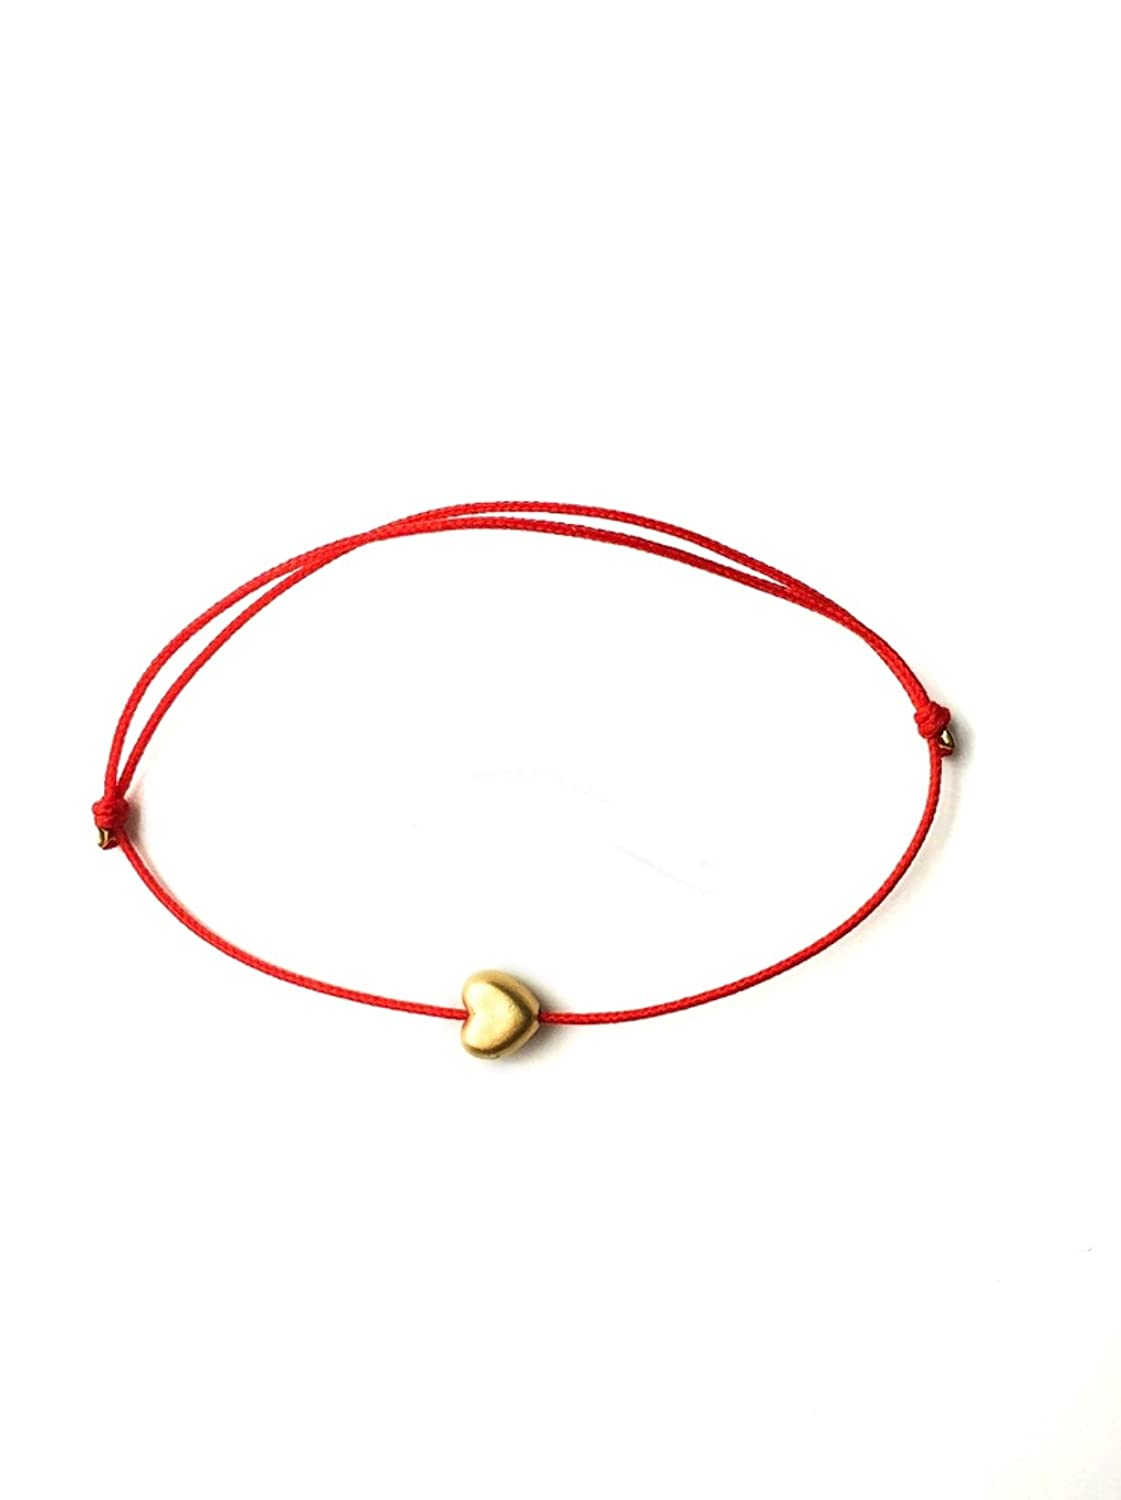 Naz Collection Gold Plated Shiny 6mm Heart Charm Red String Love Bracelet B01AYNL2PY_US